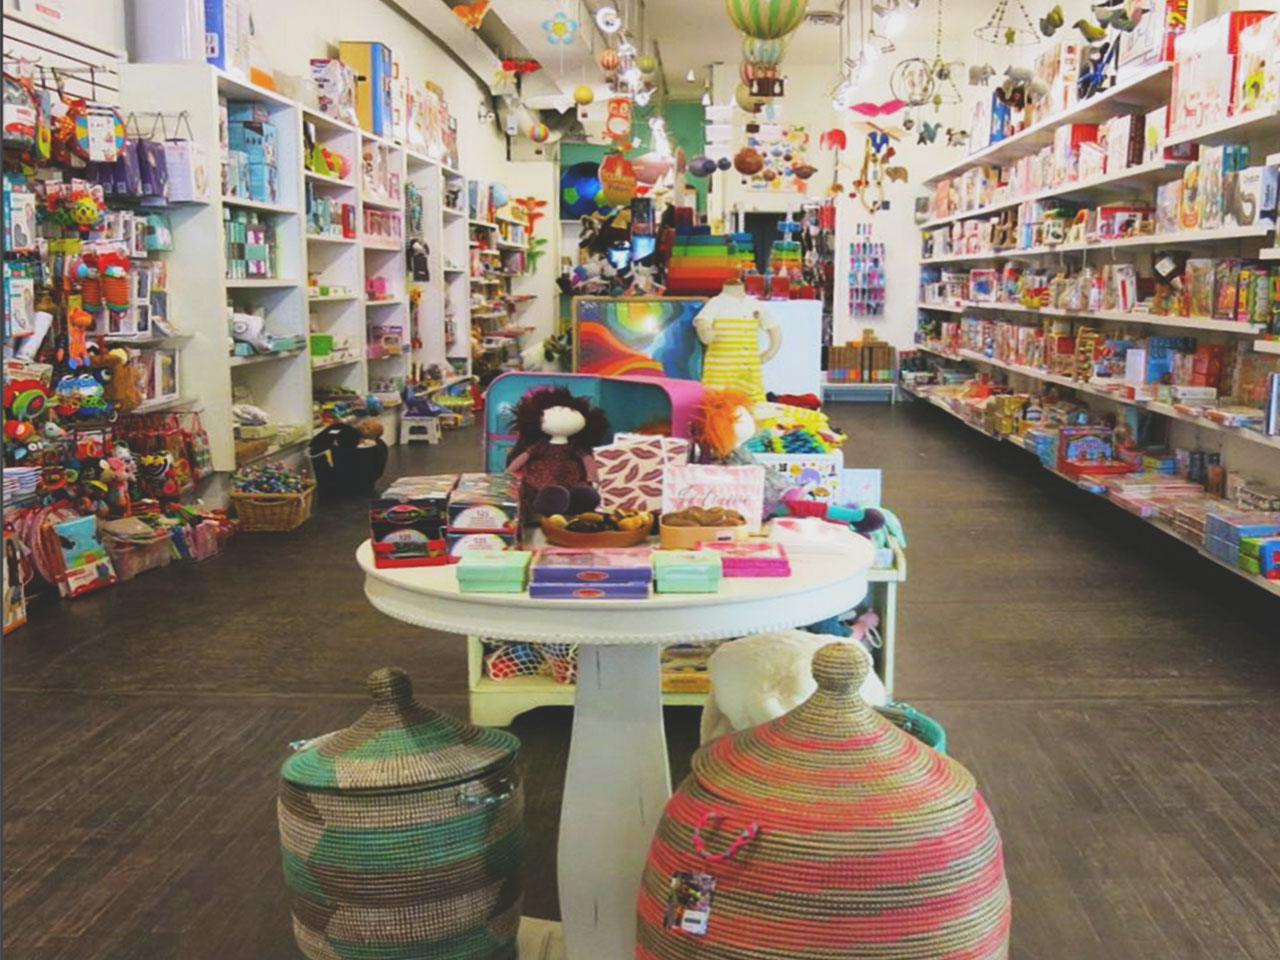 tables and shelves covered in colourful toys